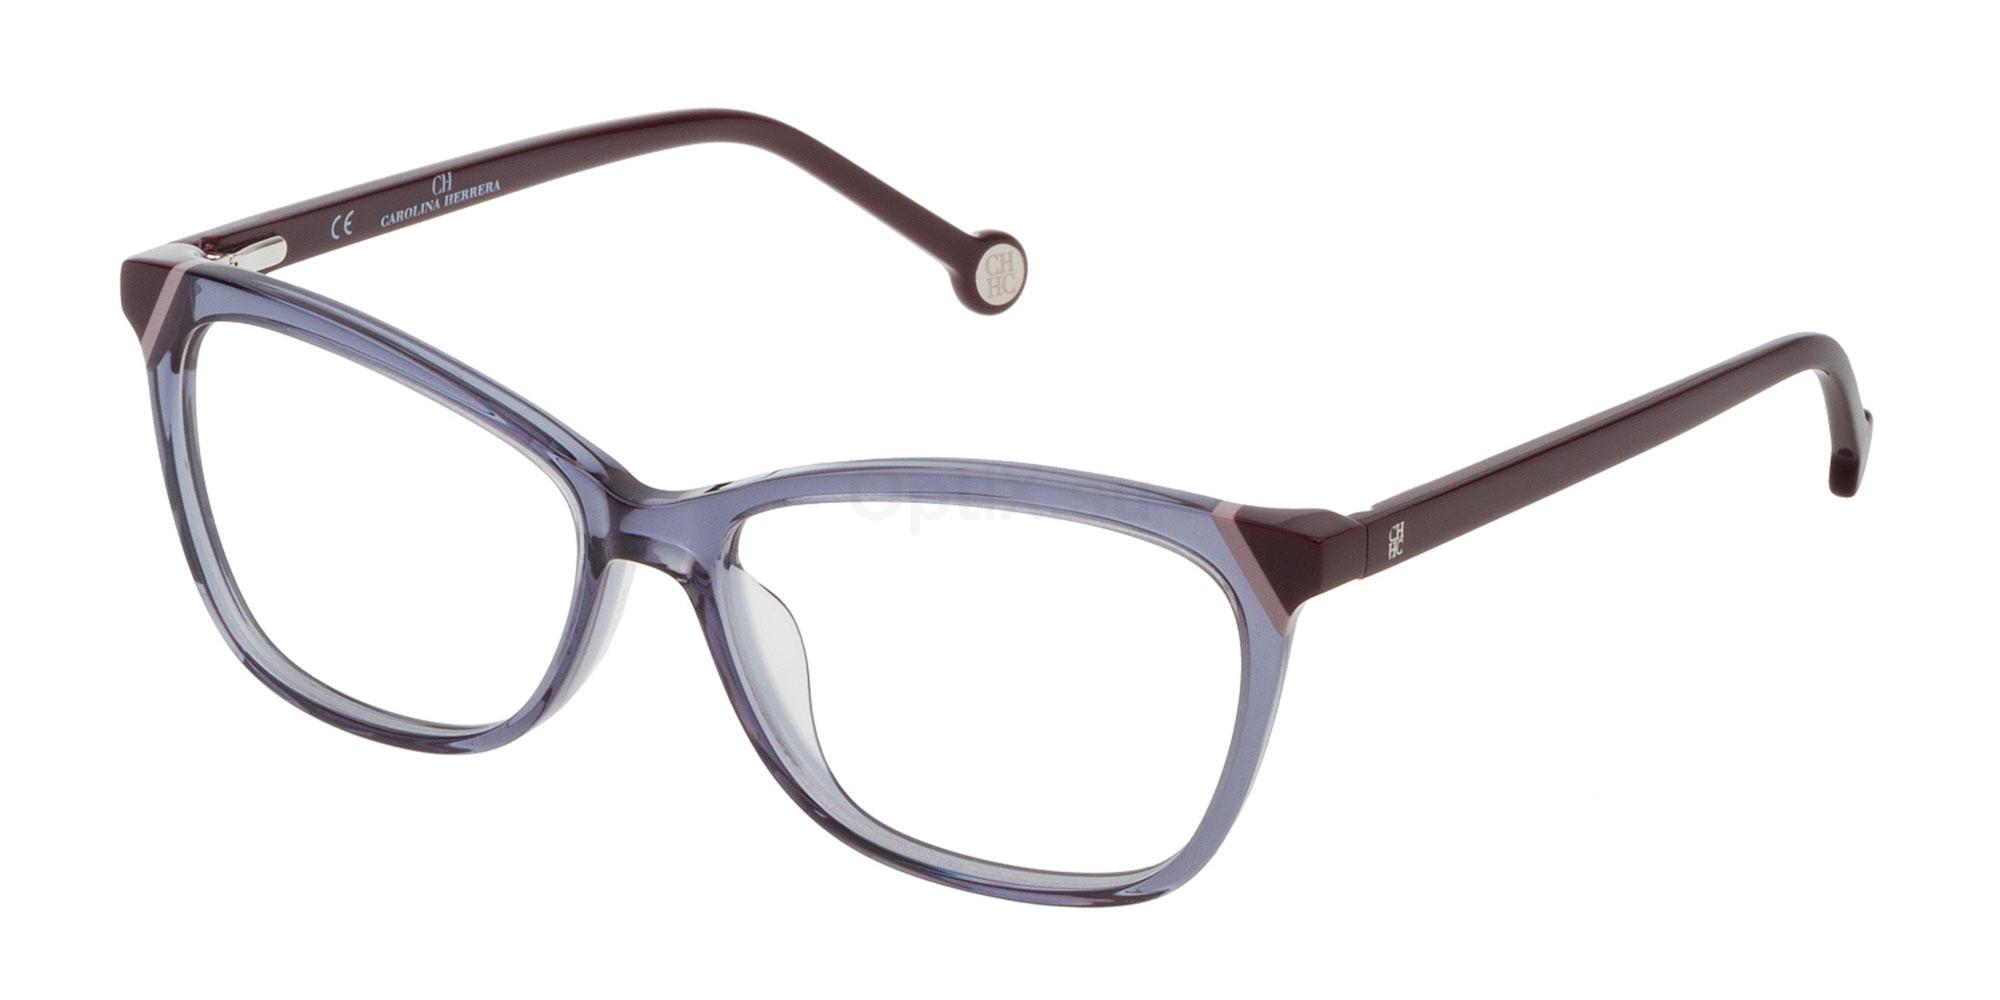 04AL VHE806L Glasses, CH Carolina Herrera